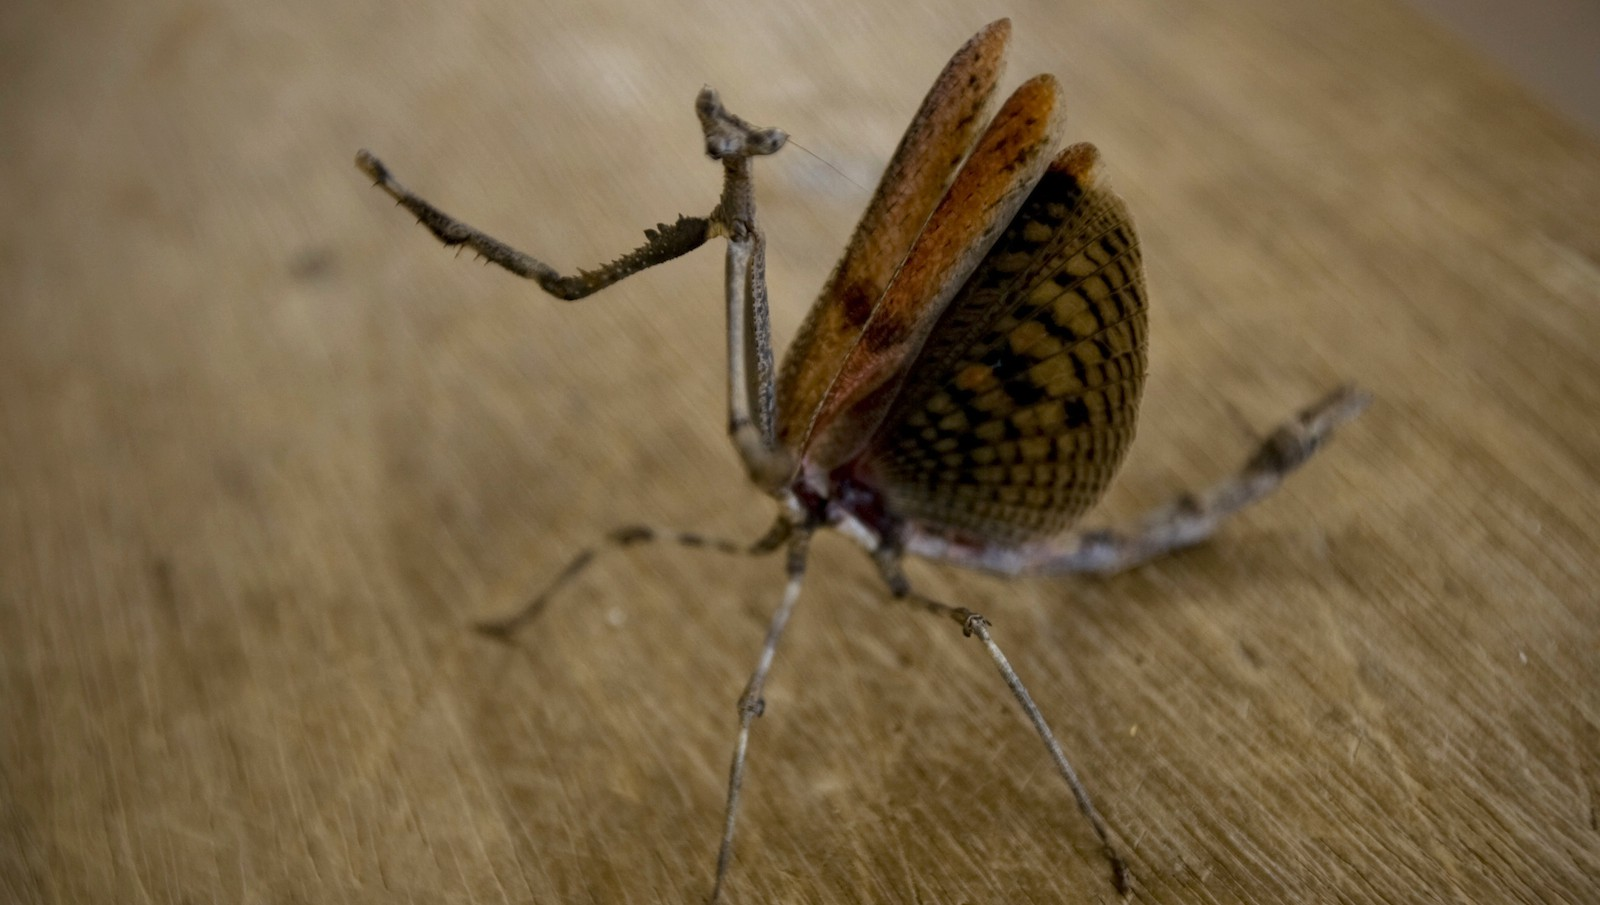 A praying mantis displays its wings in the eastern Chadian town of Gos Beida